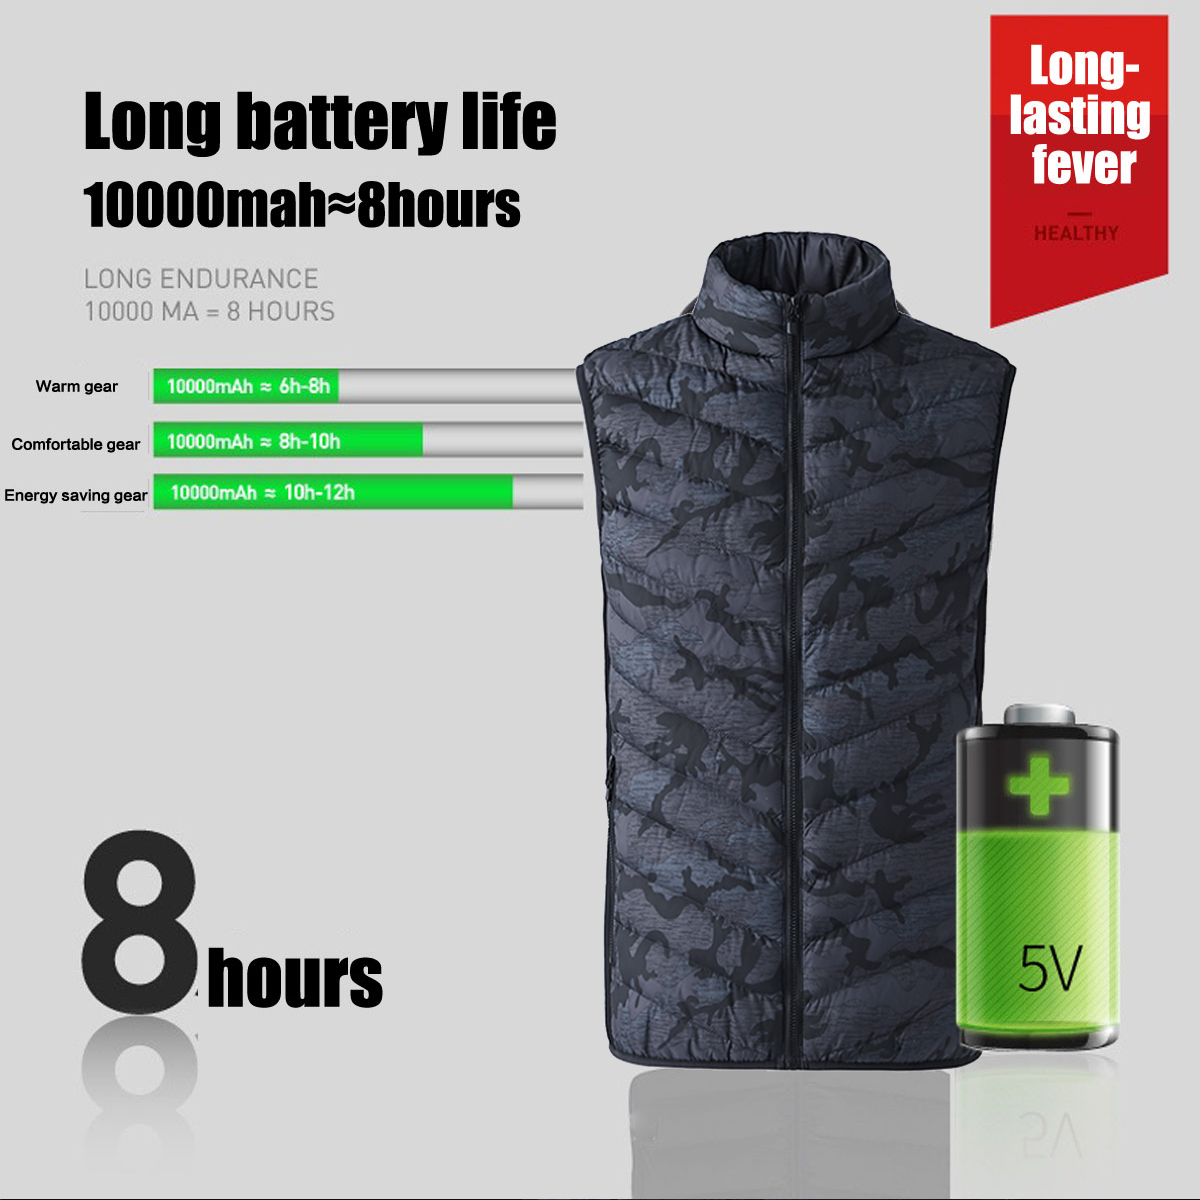 Unisex USB Electric Warm Back Cervical Spine Hooded Winter Heating Vest Coat Jacket Thermal